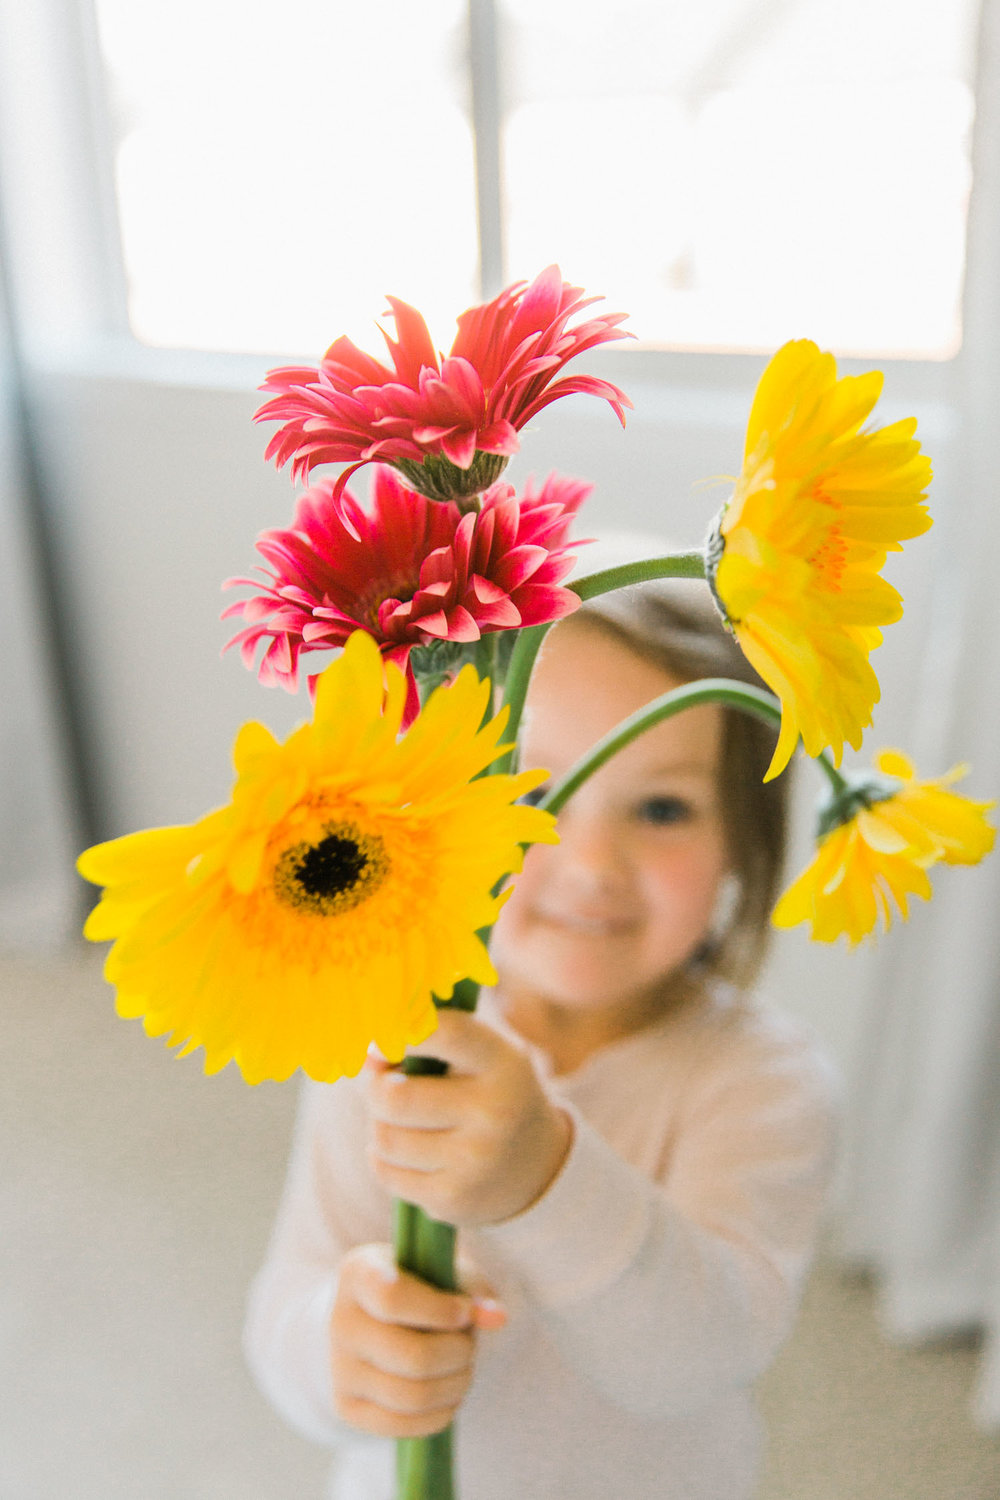 Mother's Day Calgary Photographer Guenard Photography